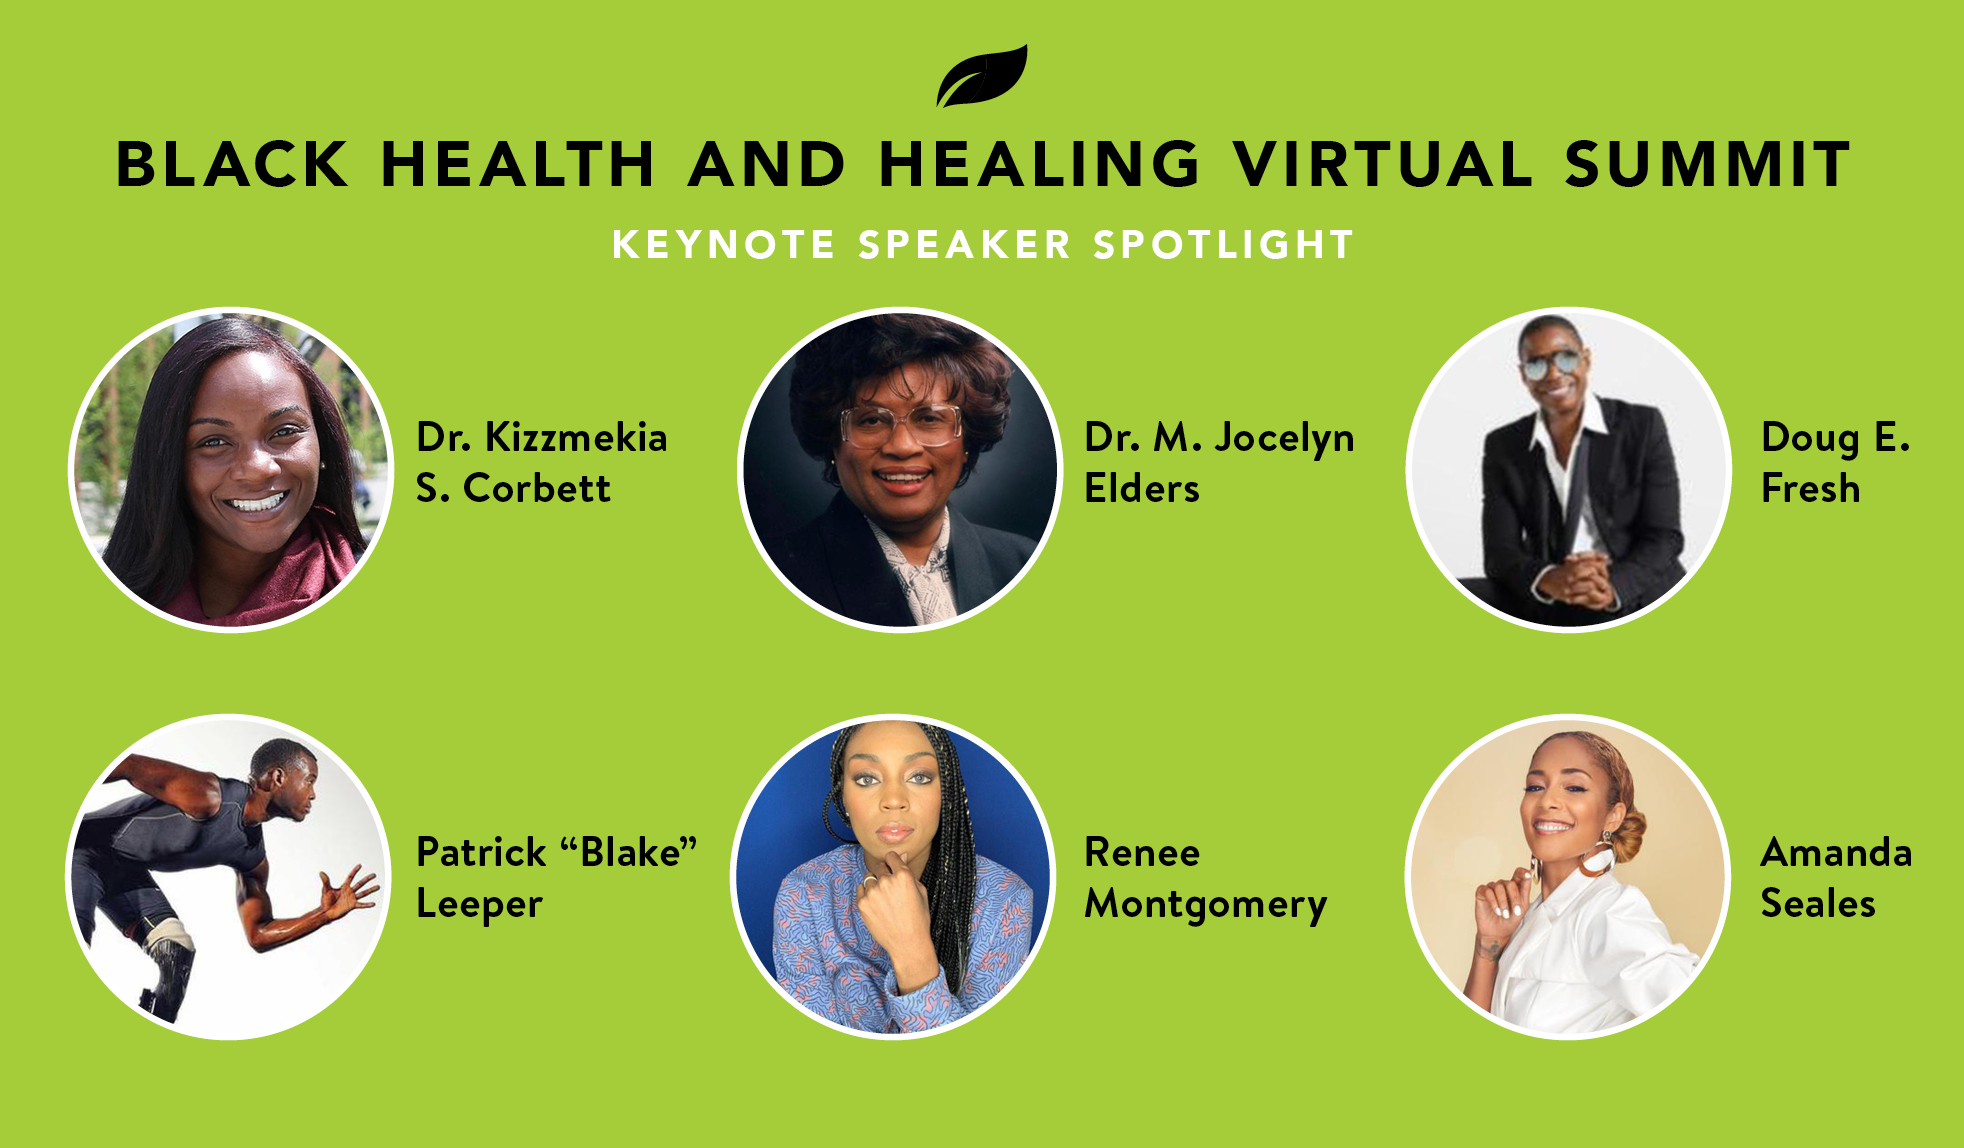 Learn more about the six keynote speakers for our Black Health and Healing Virtual Summit!